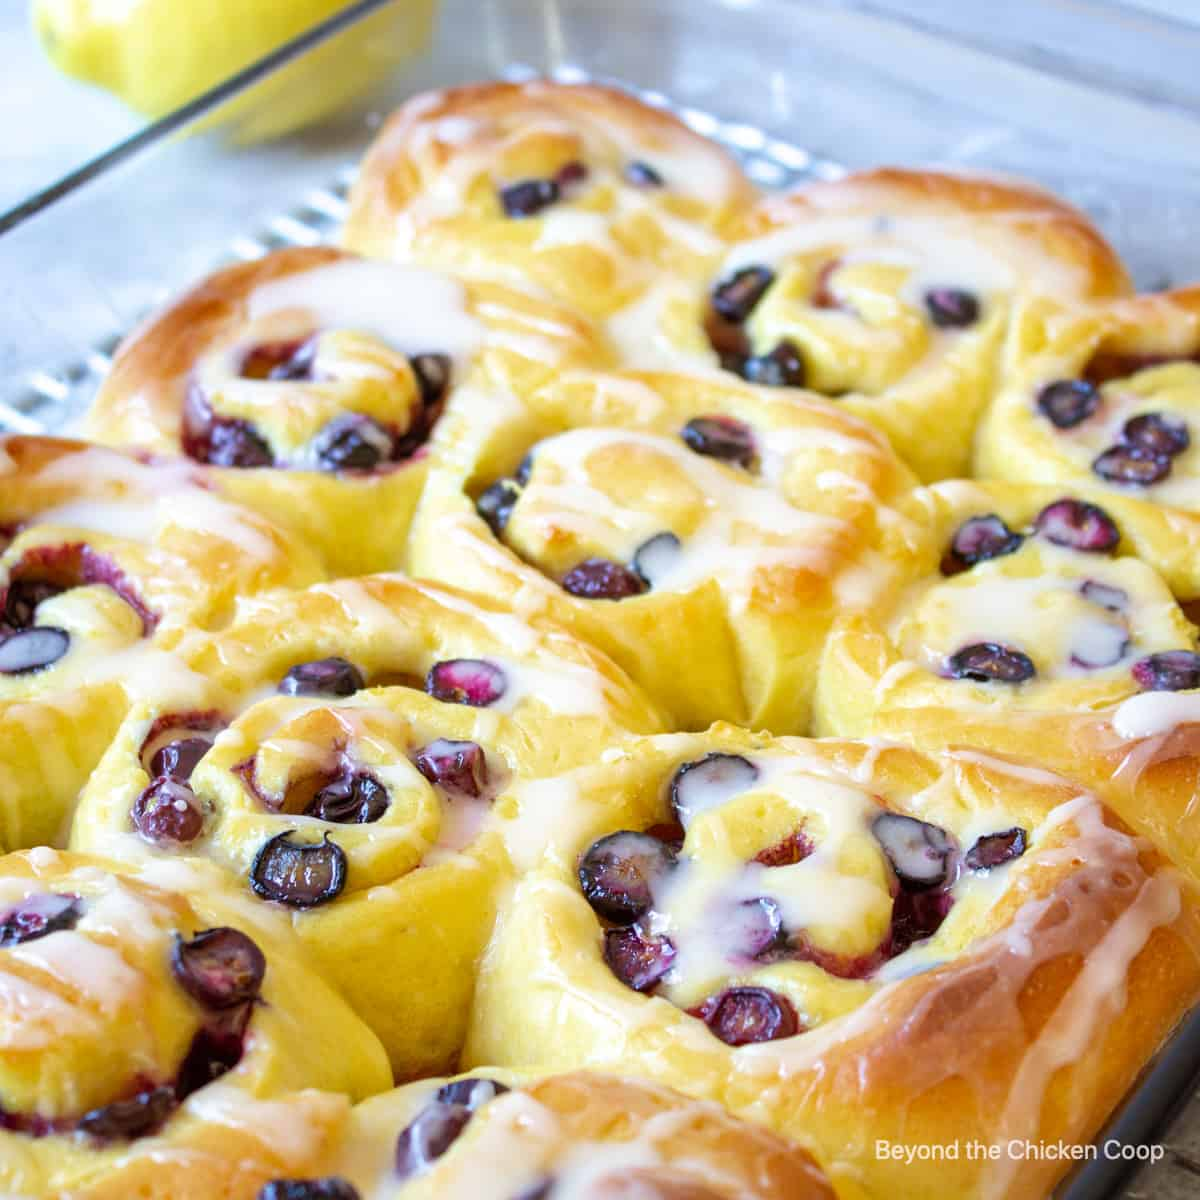 A pan filled with blueberry sweet rolls.